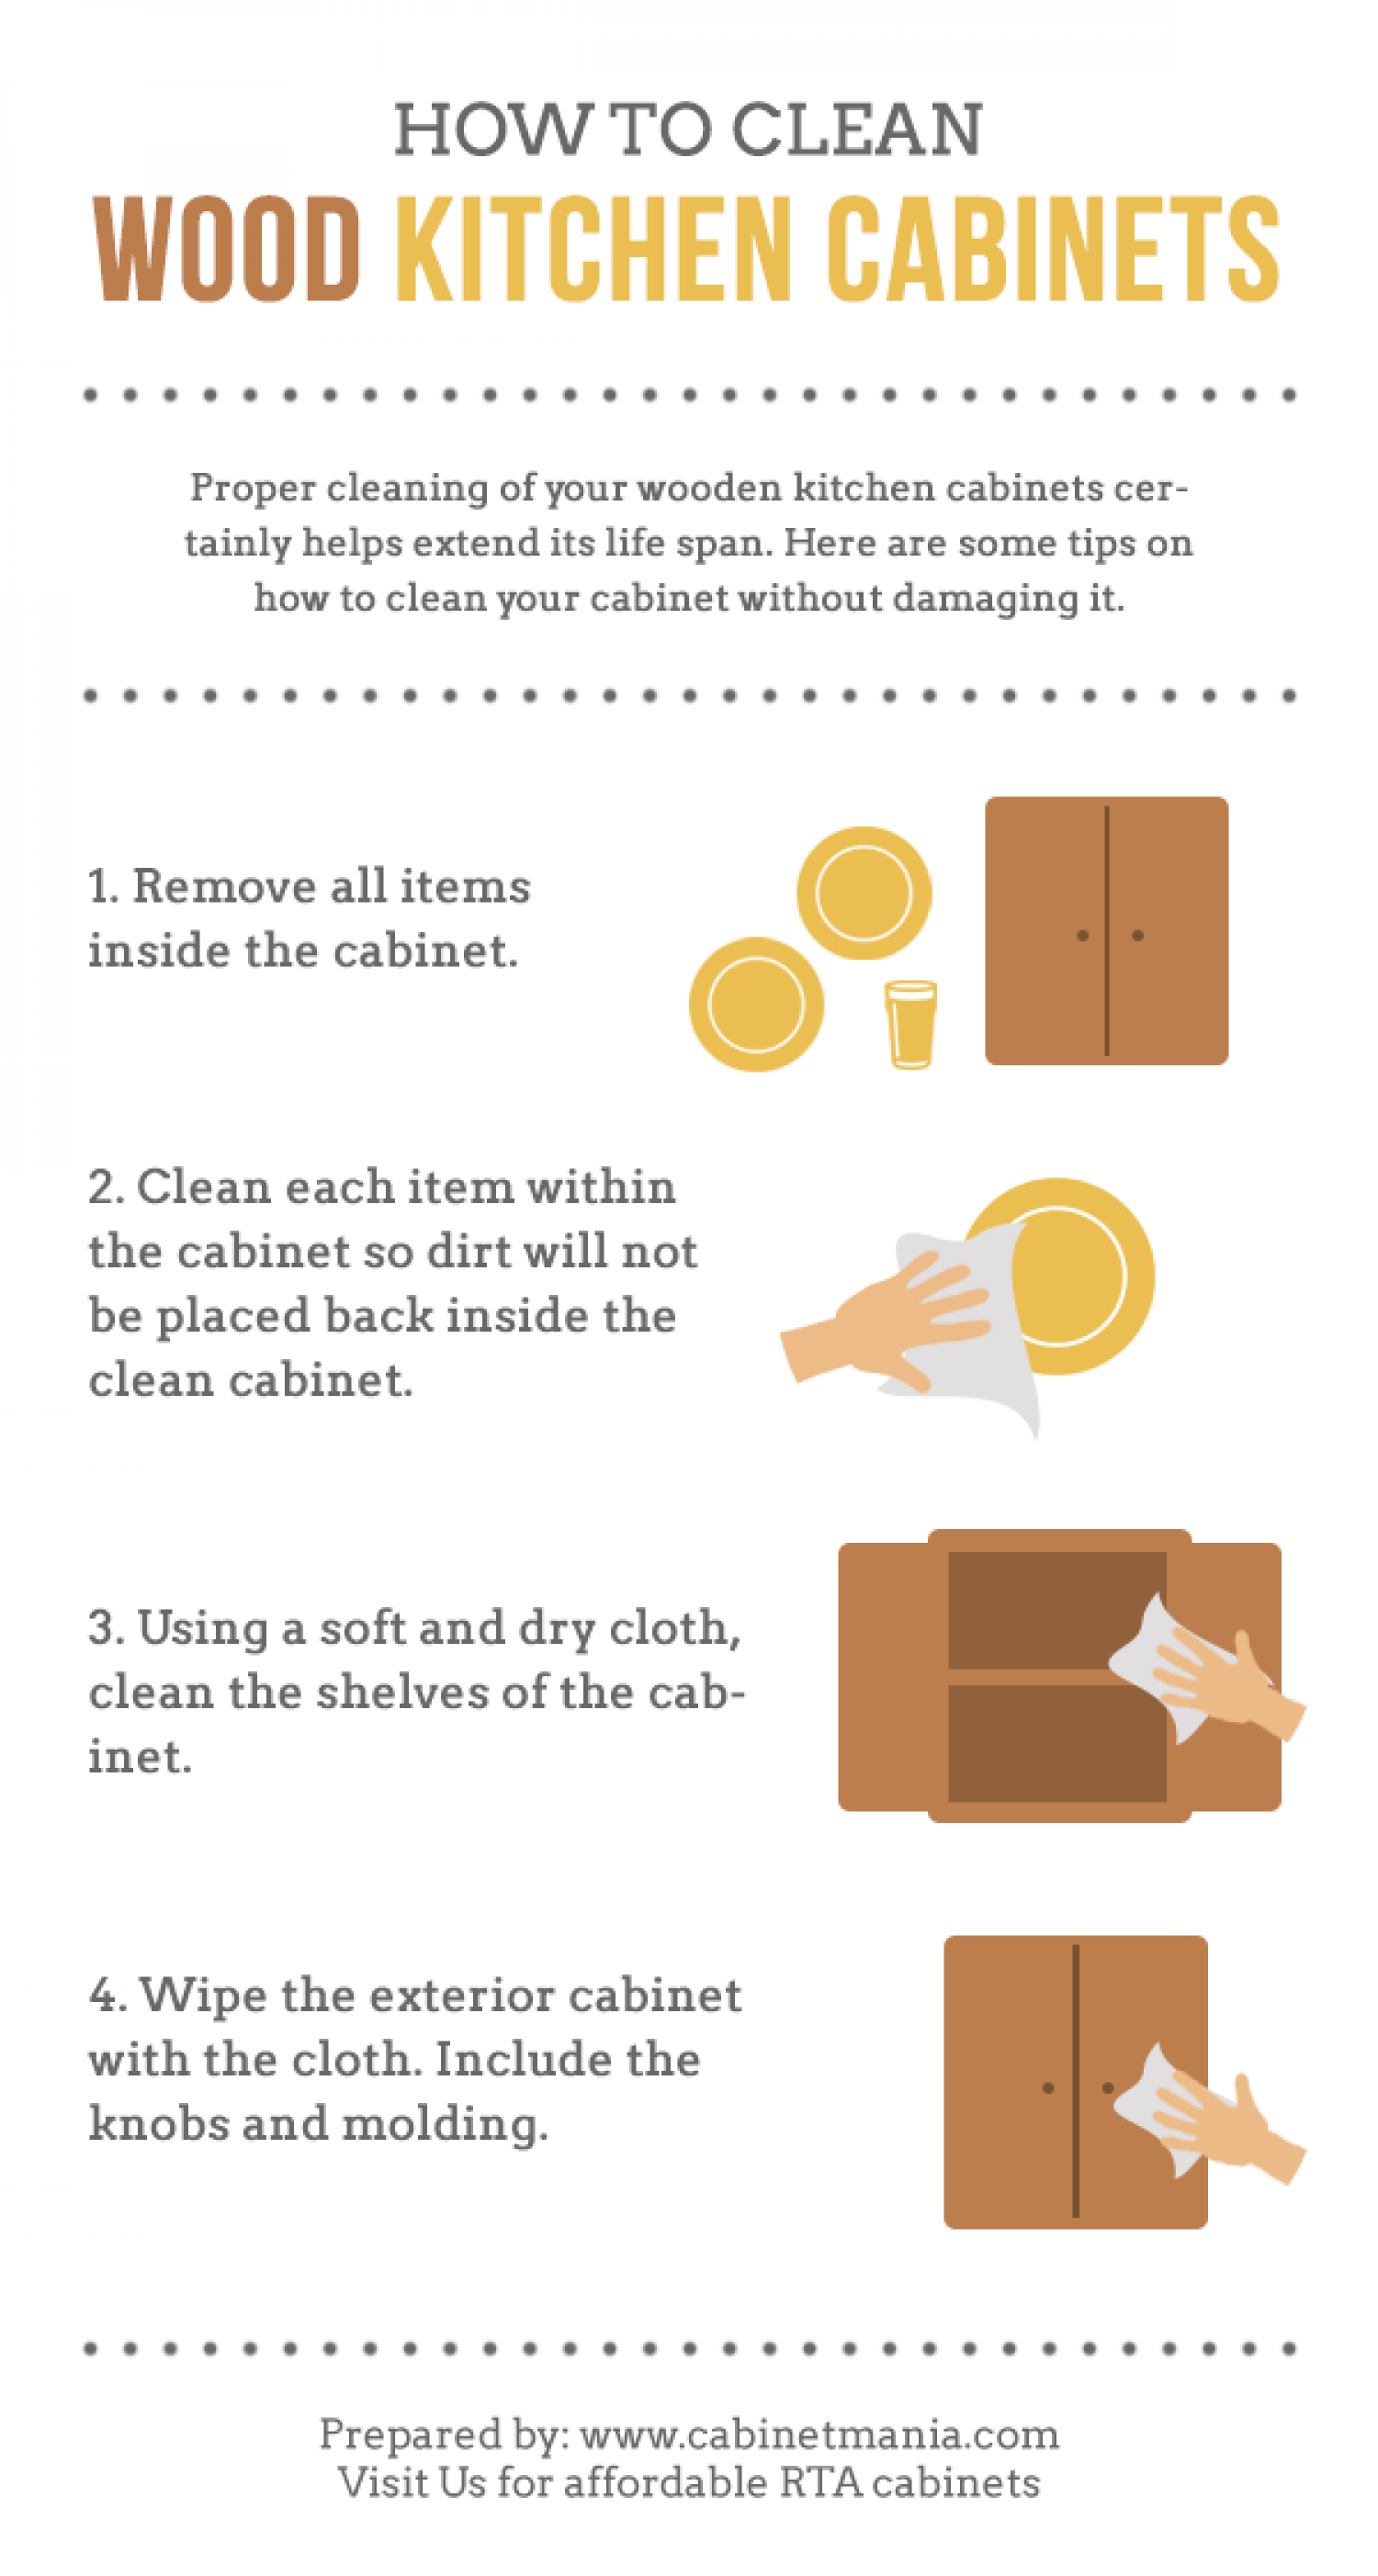 How To Clean Wood Kitchen Cabinets [Infographic] Infographic